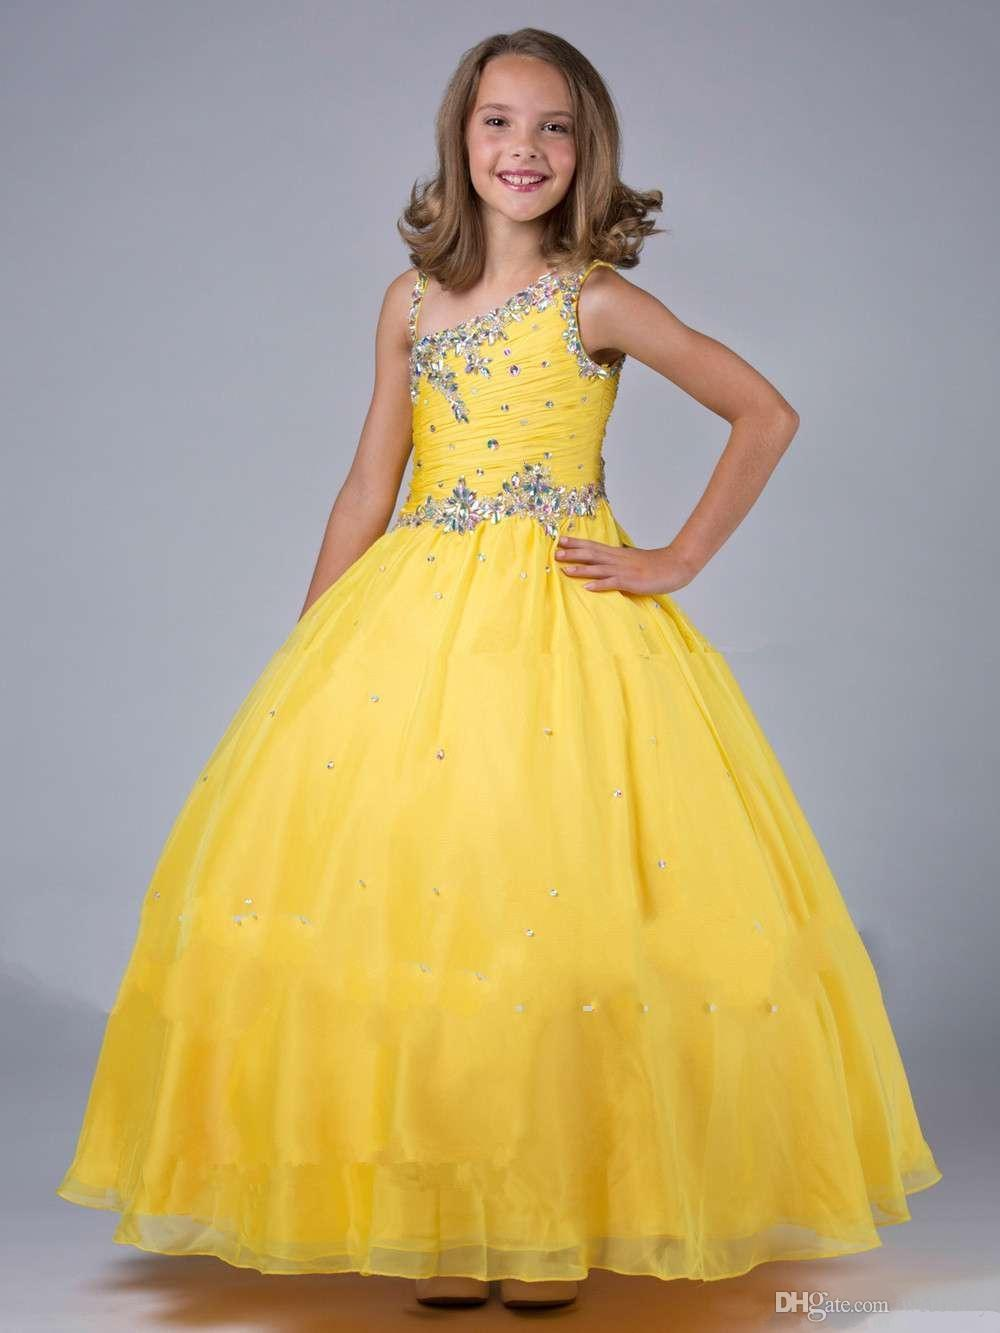 Pink Flower Girl Dresses Discount Cupcake Yellow Girls Pageant Dresses Girl Dresses for Ritzee Girls Pageant Gowns 2018 New Arrival HY1155